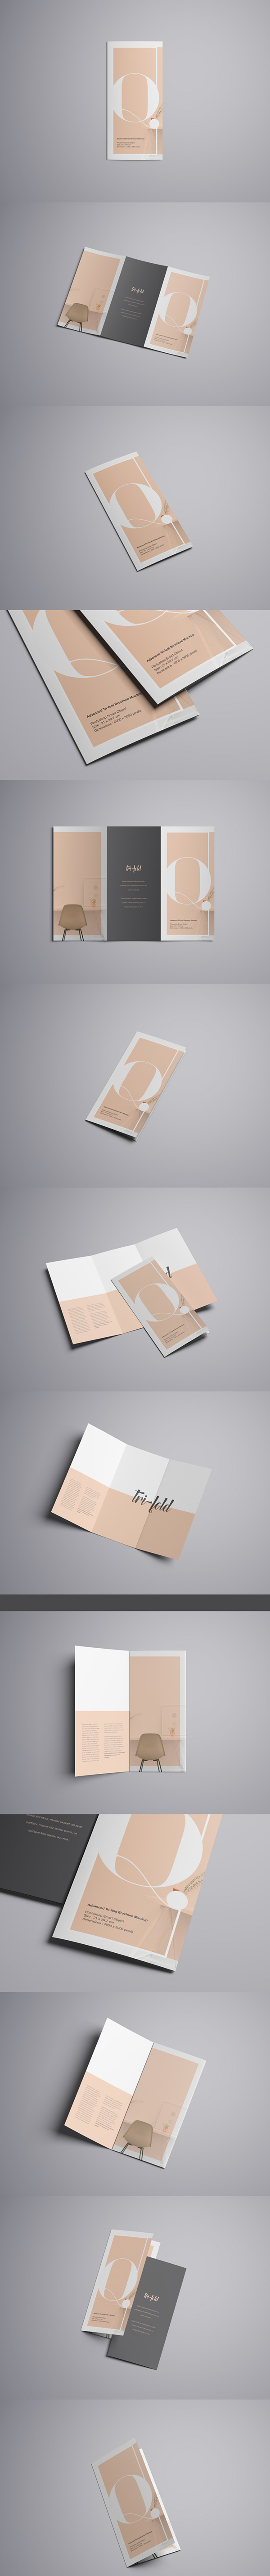 75  Free PSD Magazine  Book  Cover   Brochure Mock ups Advanced Tri Fold Brochure Mockup  Free Version